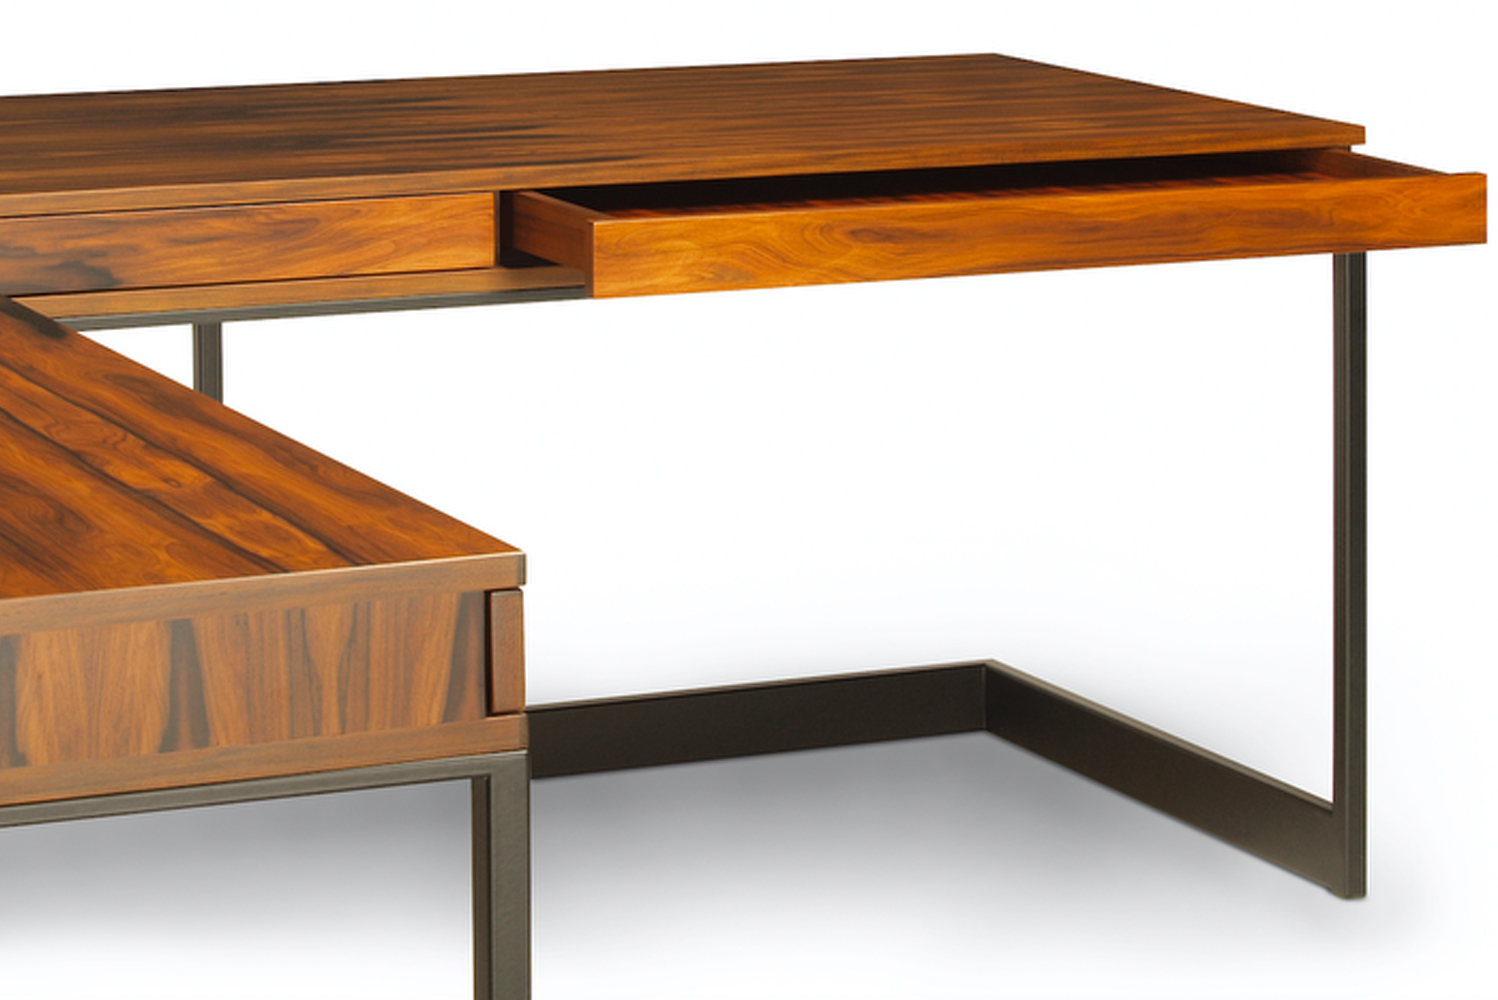 Skram Furniture launched a new addition to its Wishbone collection, the Wishbone executive desk.